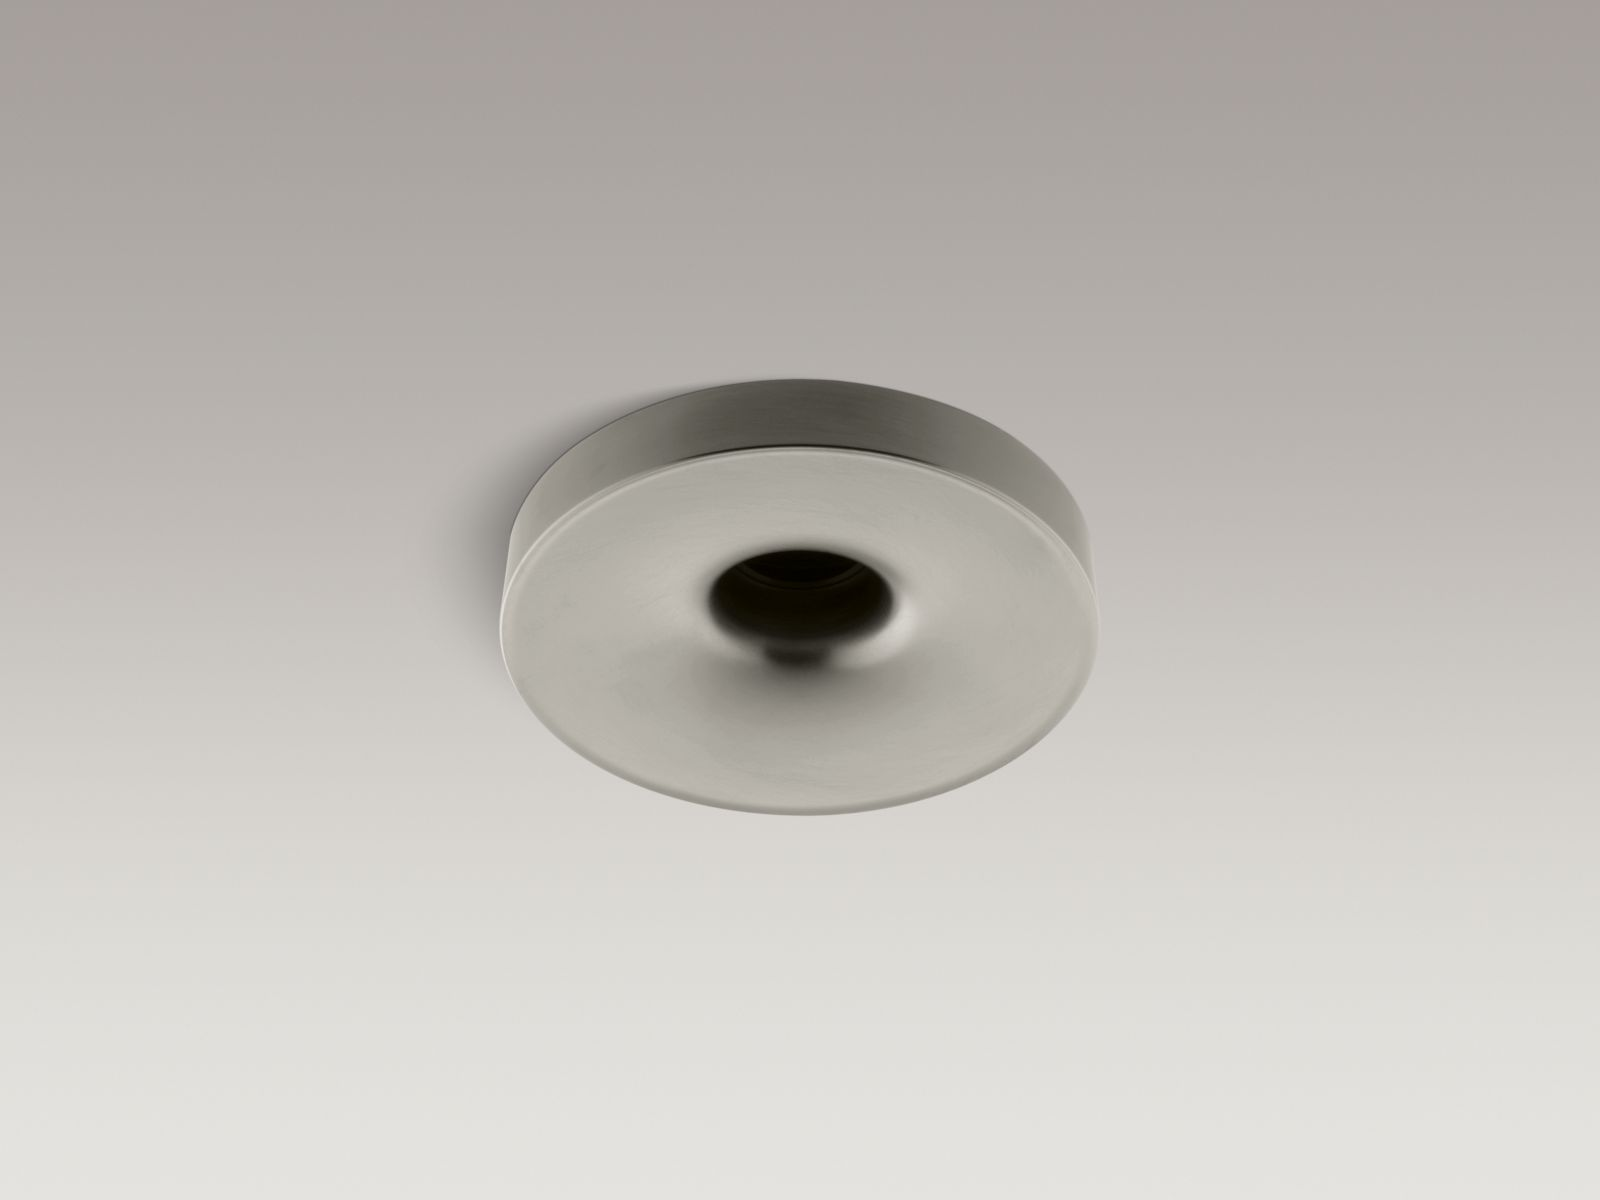 "Kohler K-922-BN Laminar Wall- or Ceiling-mounted Bathtub Filler with 0.8"" Orifice Vibrant Brushed Nickel"